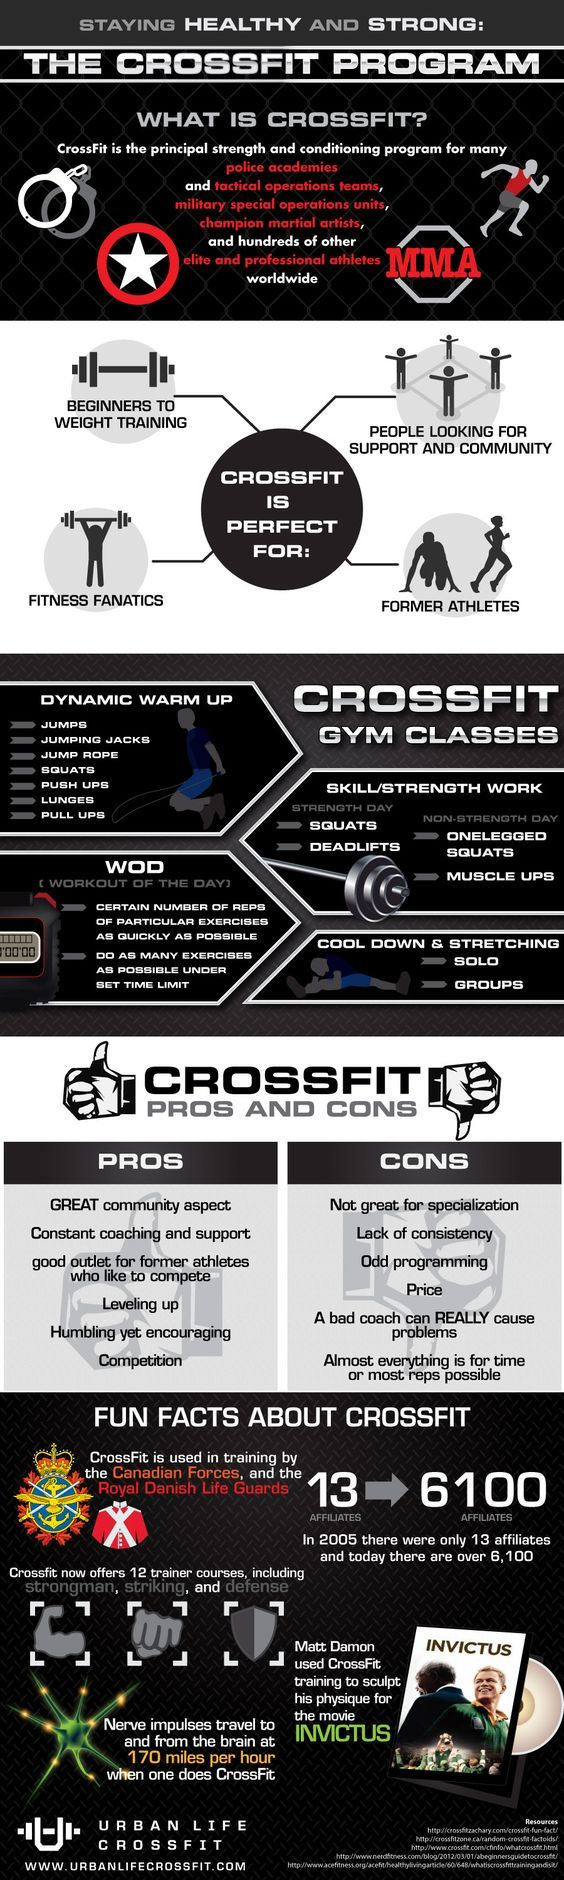 What is crossfit? The Crossfit Program